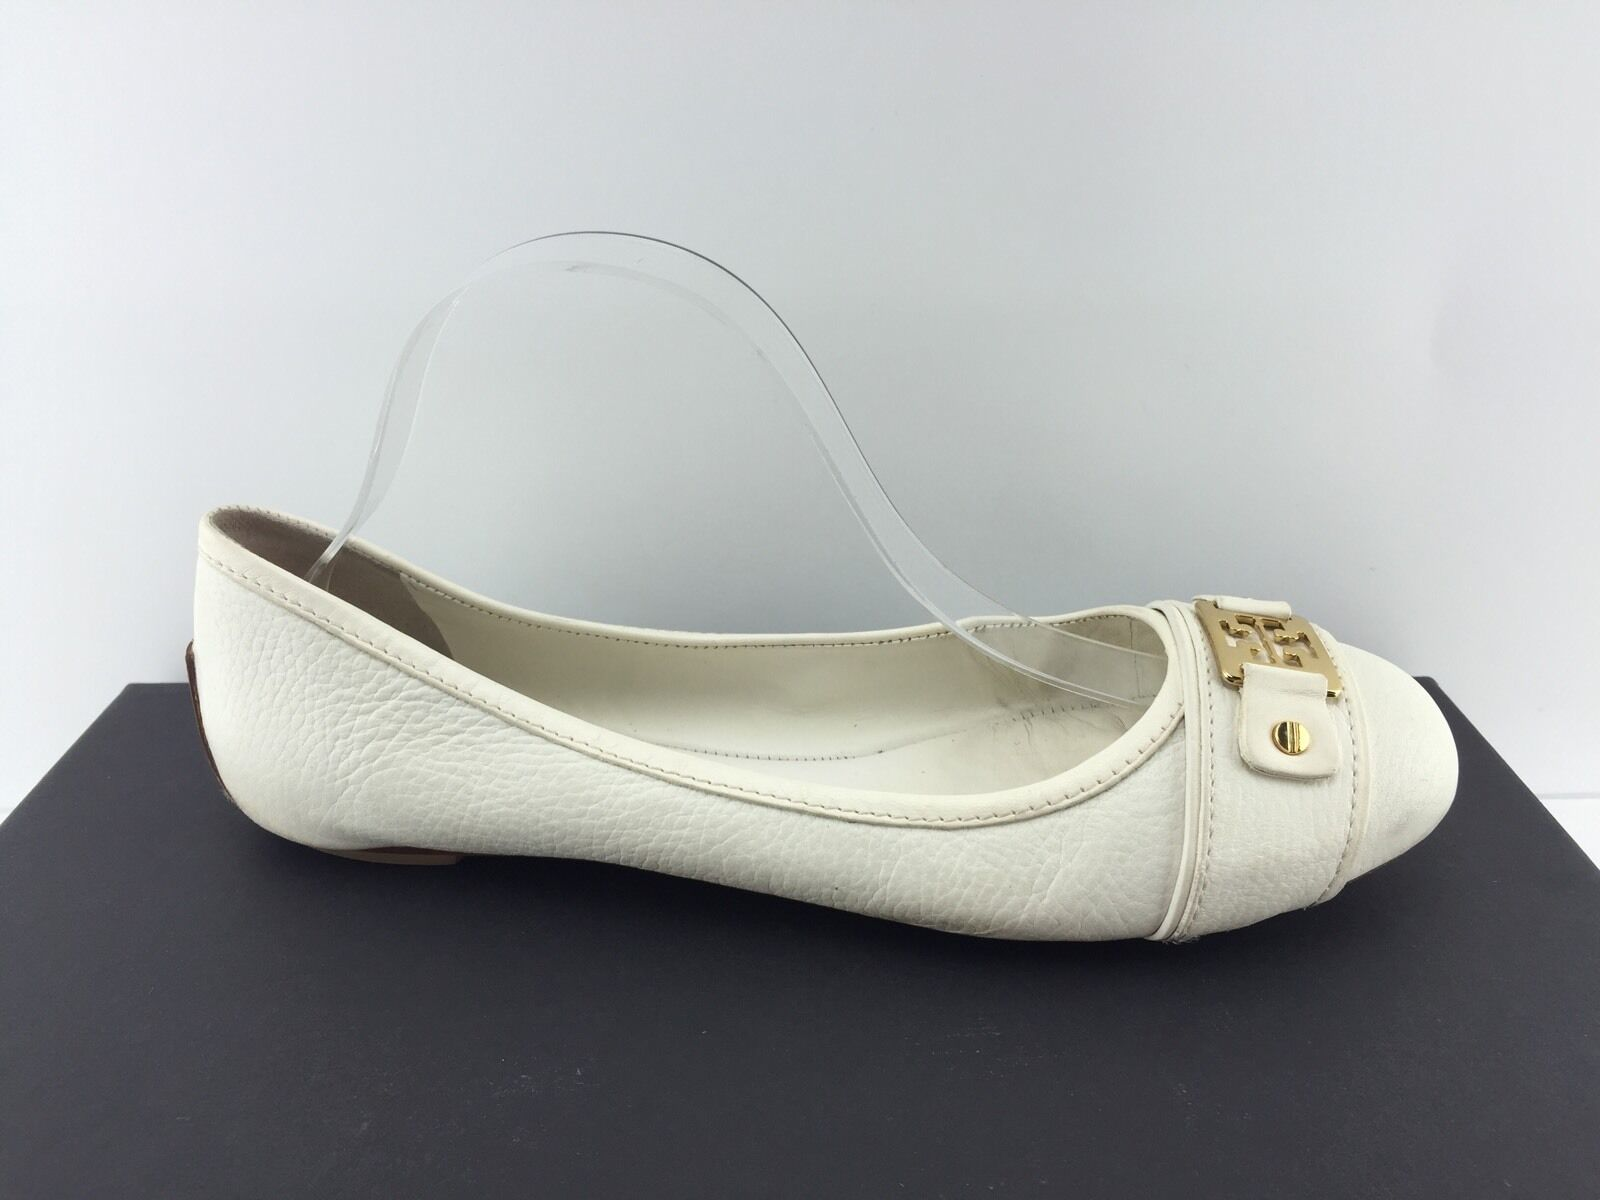 Tory  Burch bianca Leather Flats 10.5 M  presa di fabbrica